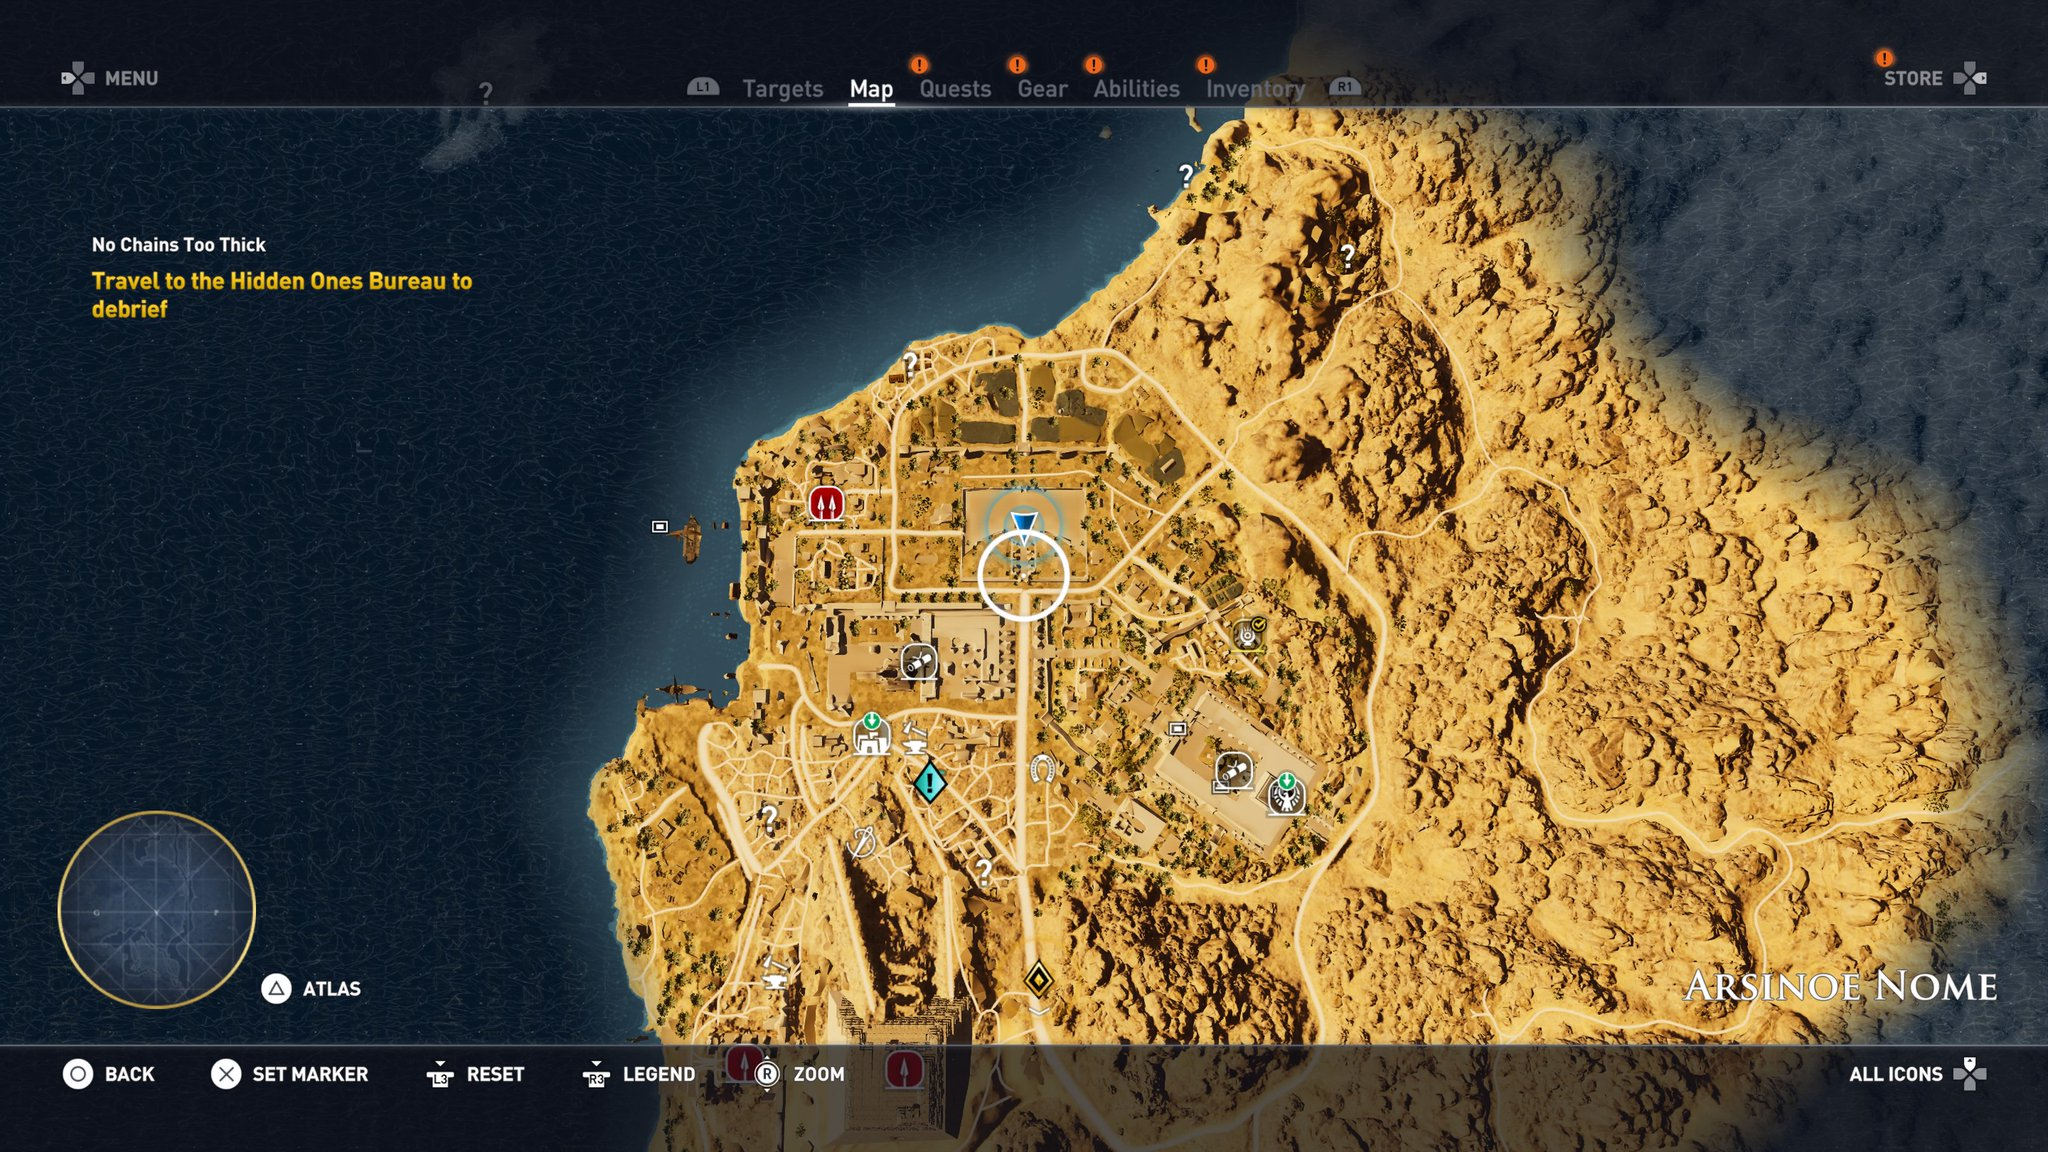 Playstationtrophies Org View Single Post Assassin S Creed